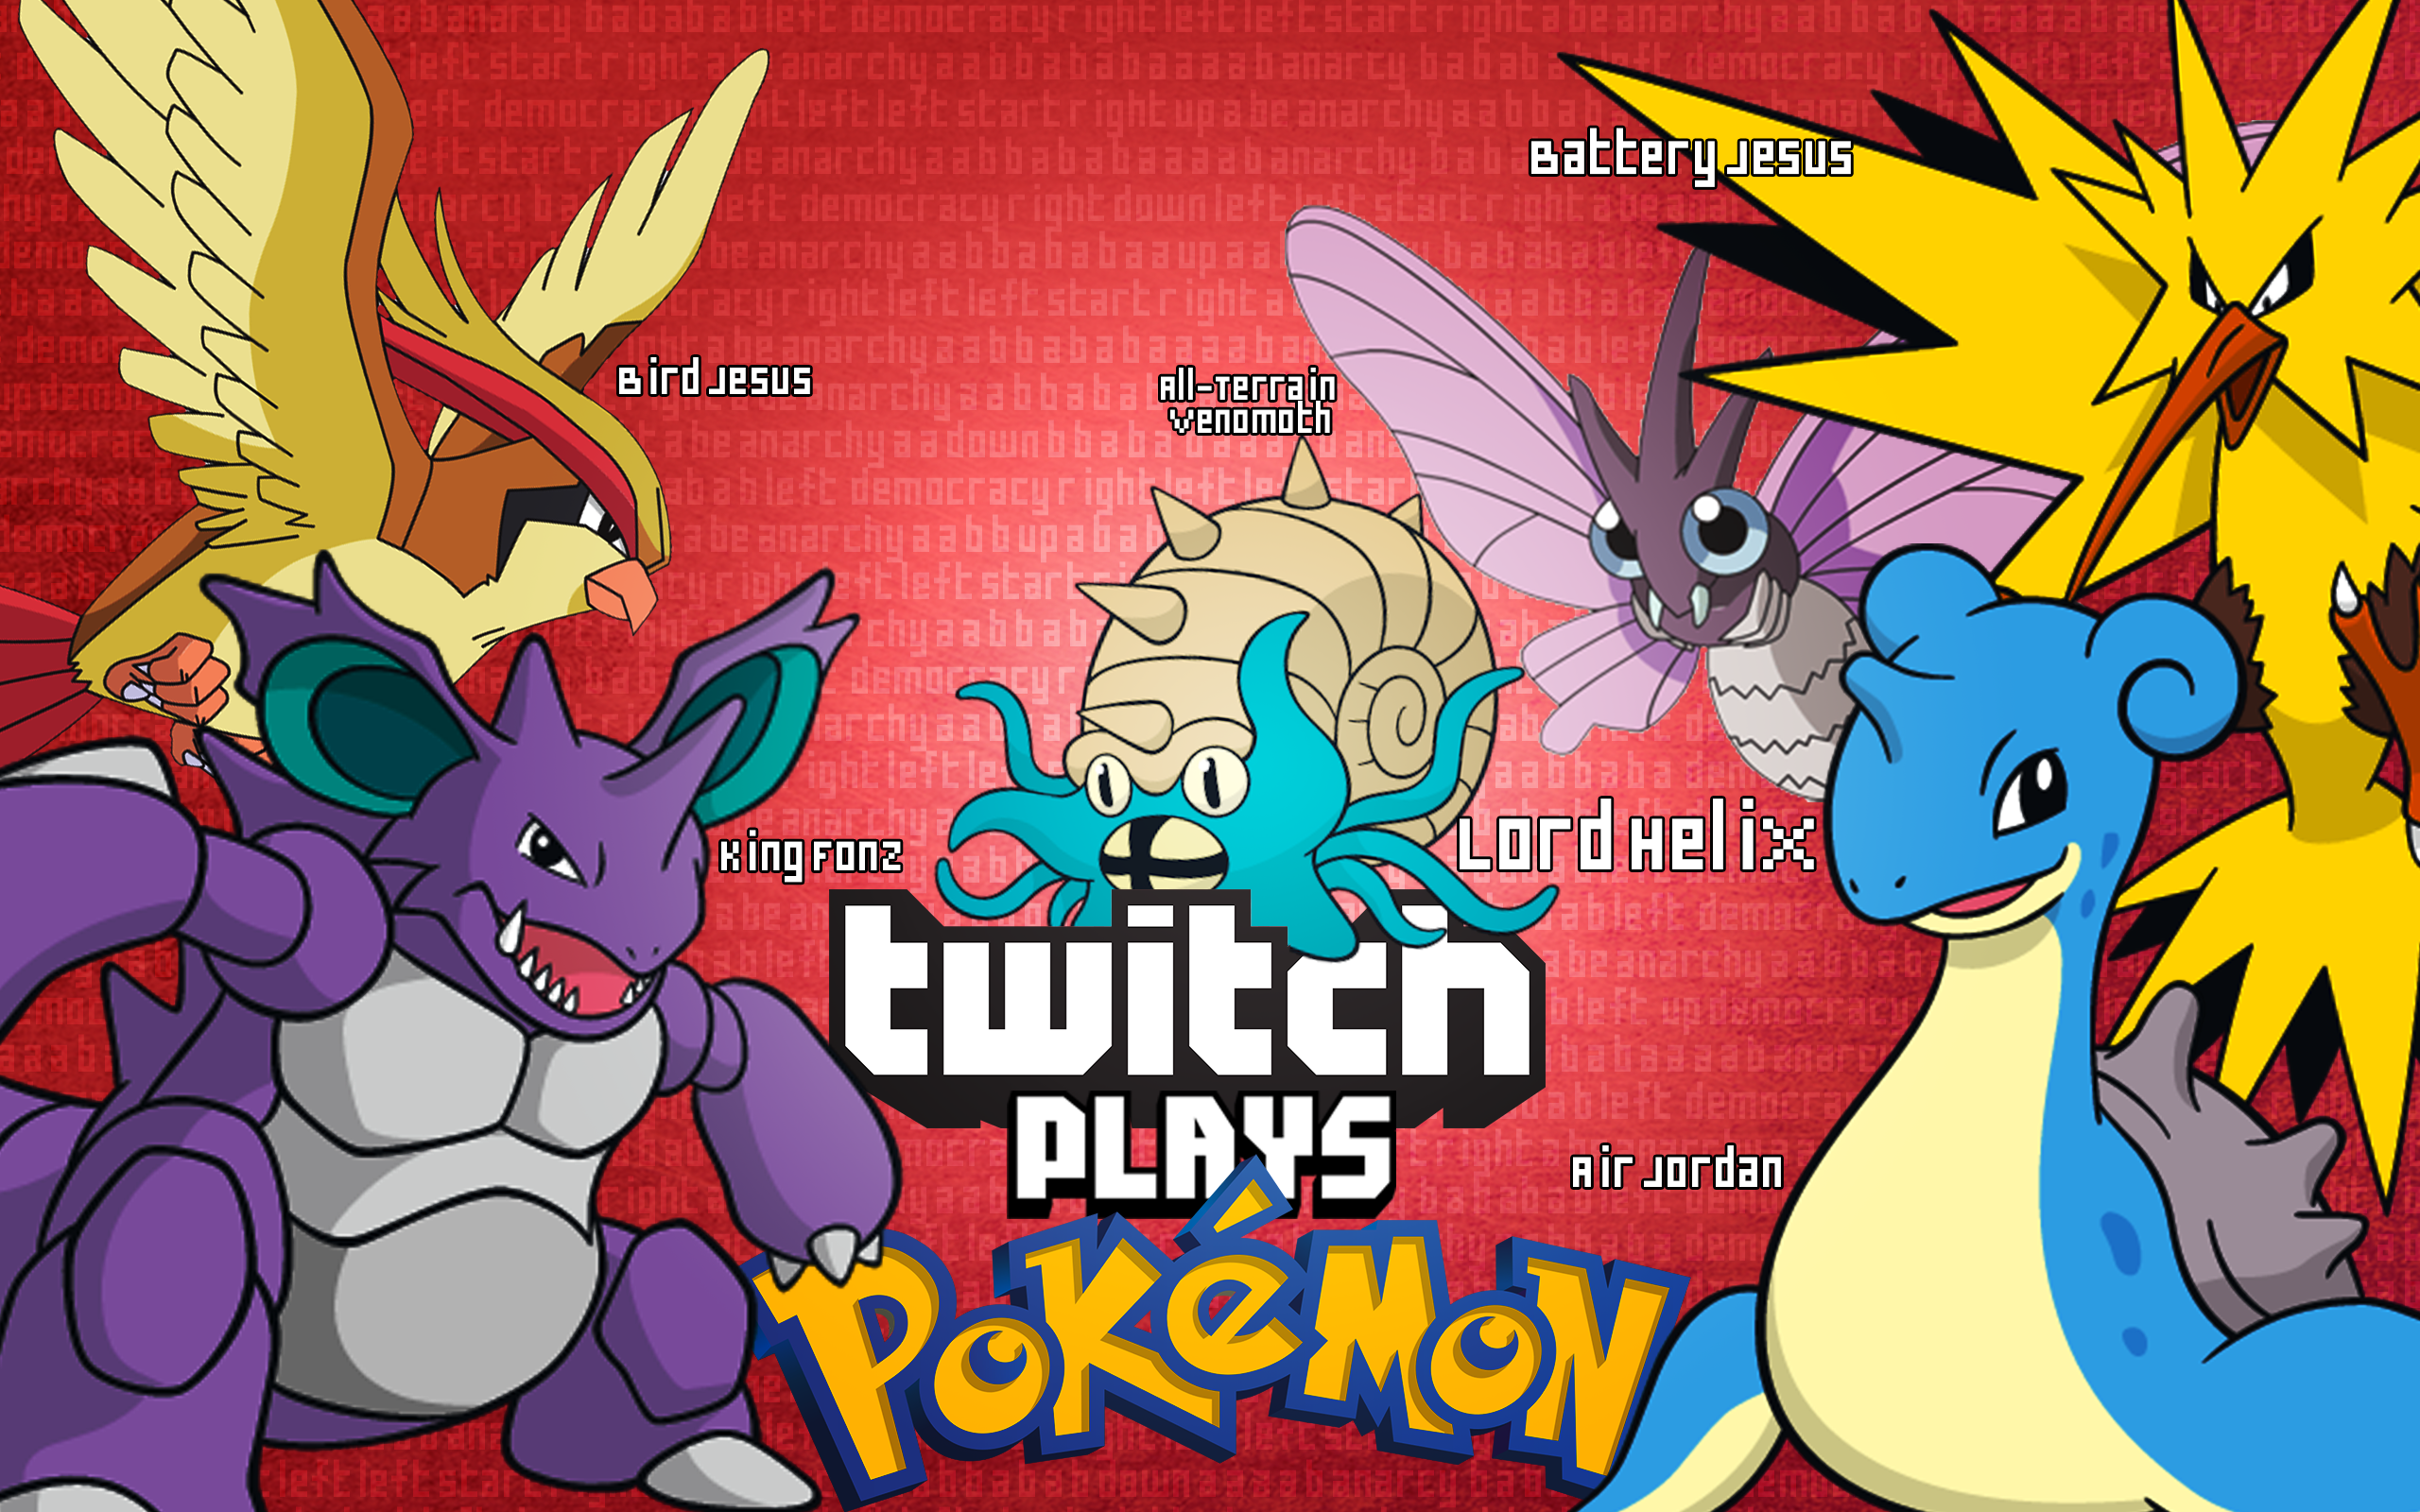 TWITCH PLAYS POKEMON - Altogether! by Enttei